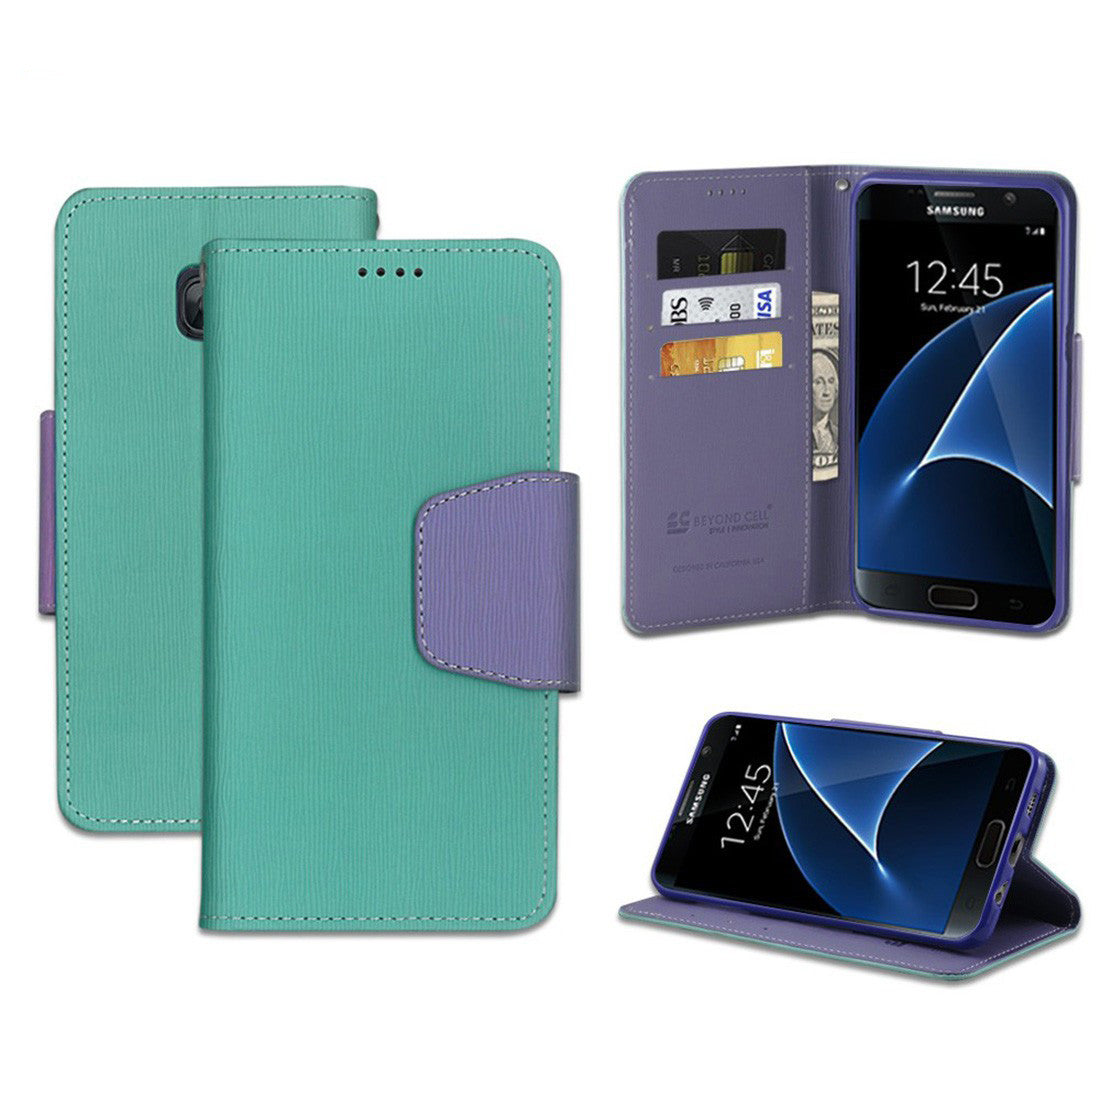 Infolio For Samsung Galaxy S7 Mint/Purple With Purple Gel/PU Leather/TPU Case/Card Slot/Bill Fold/Magnetic Flap